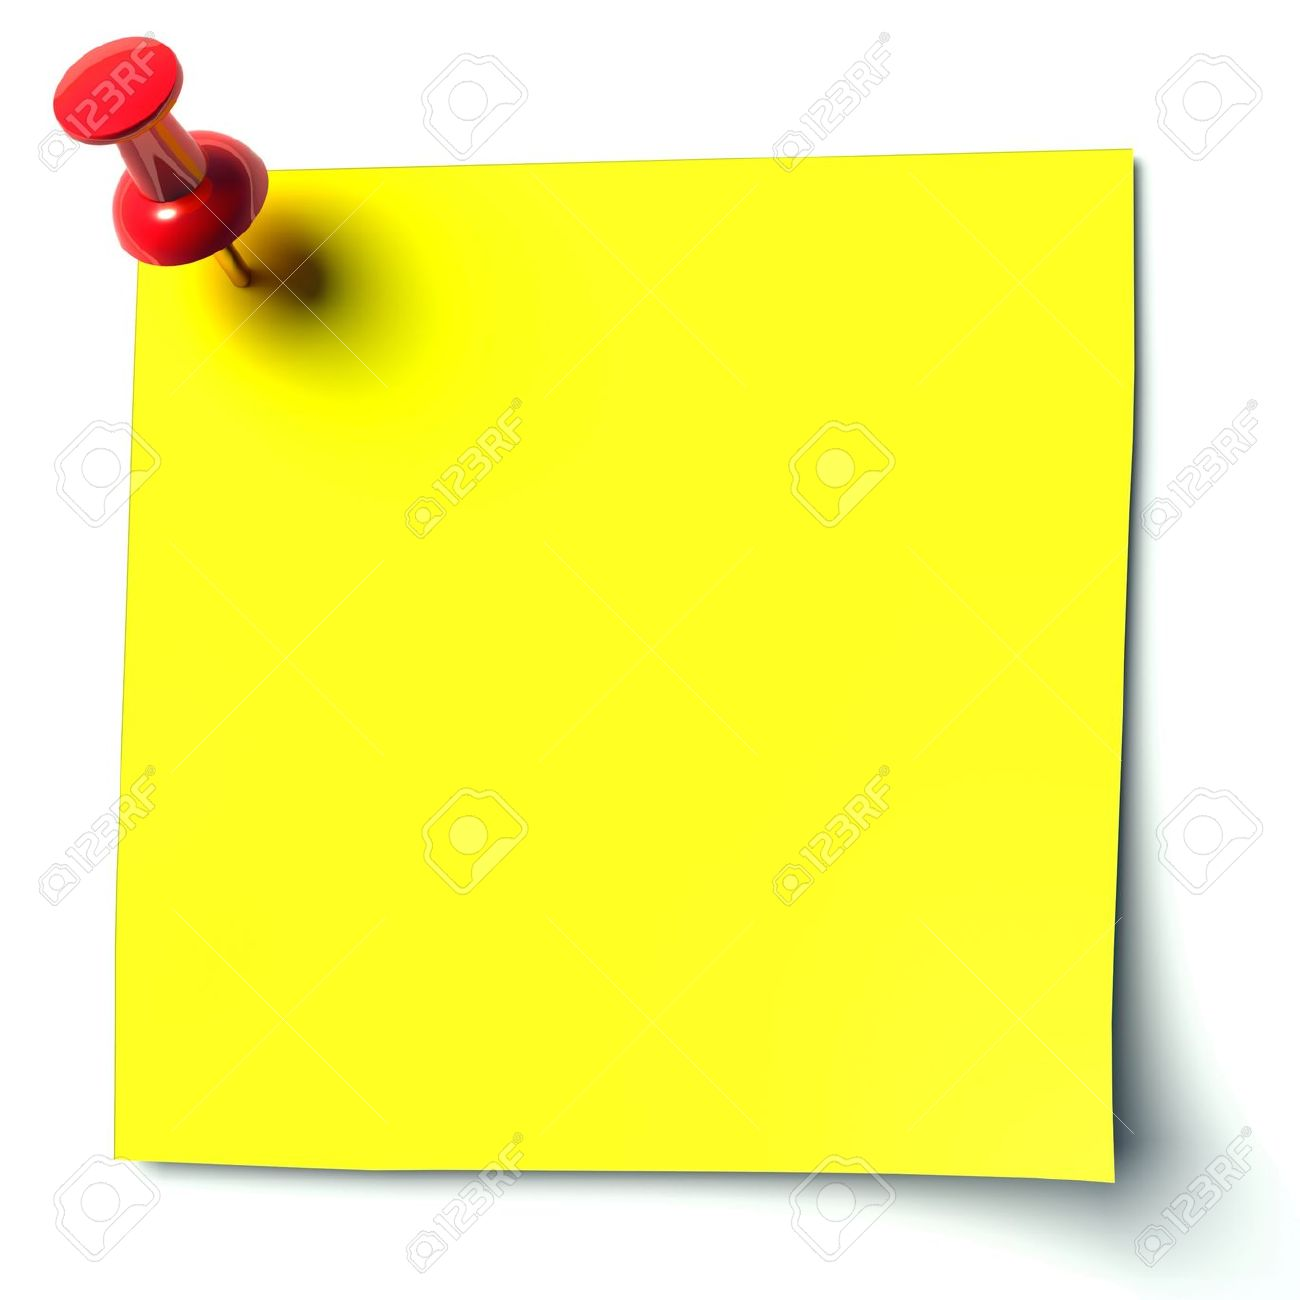 yellow sticker attached drawing pin Stock Photo - 11137193